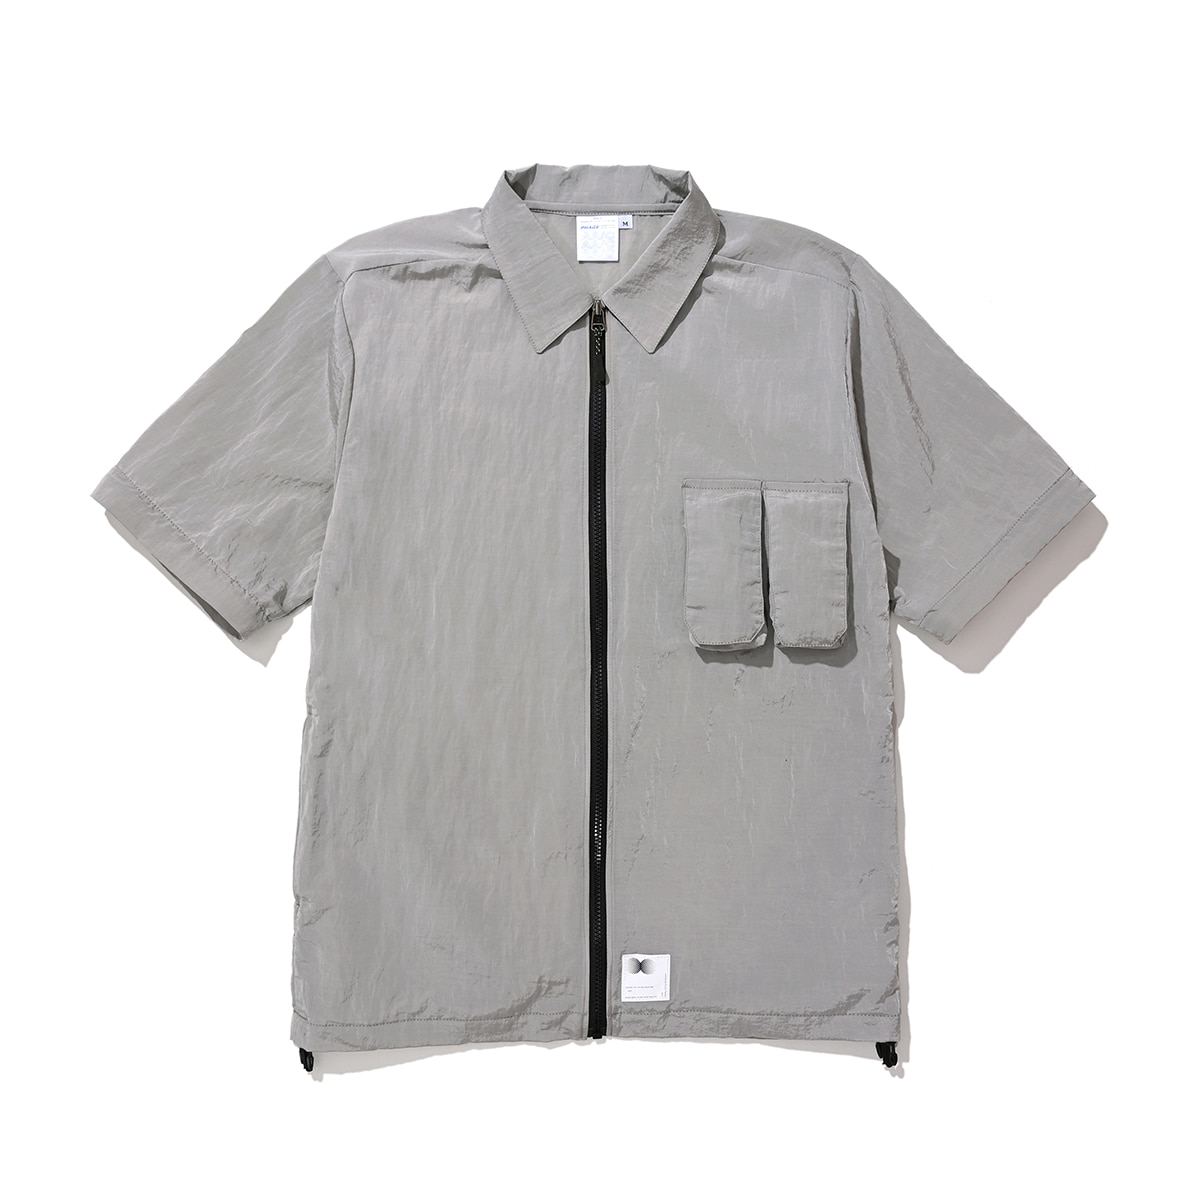 Zippered Hybrid Over-Shirt (gray)